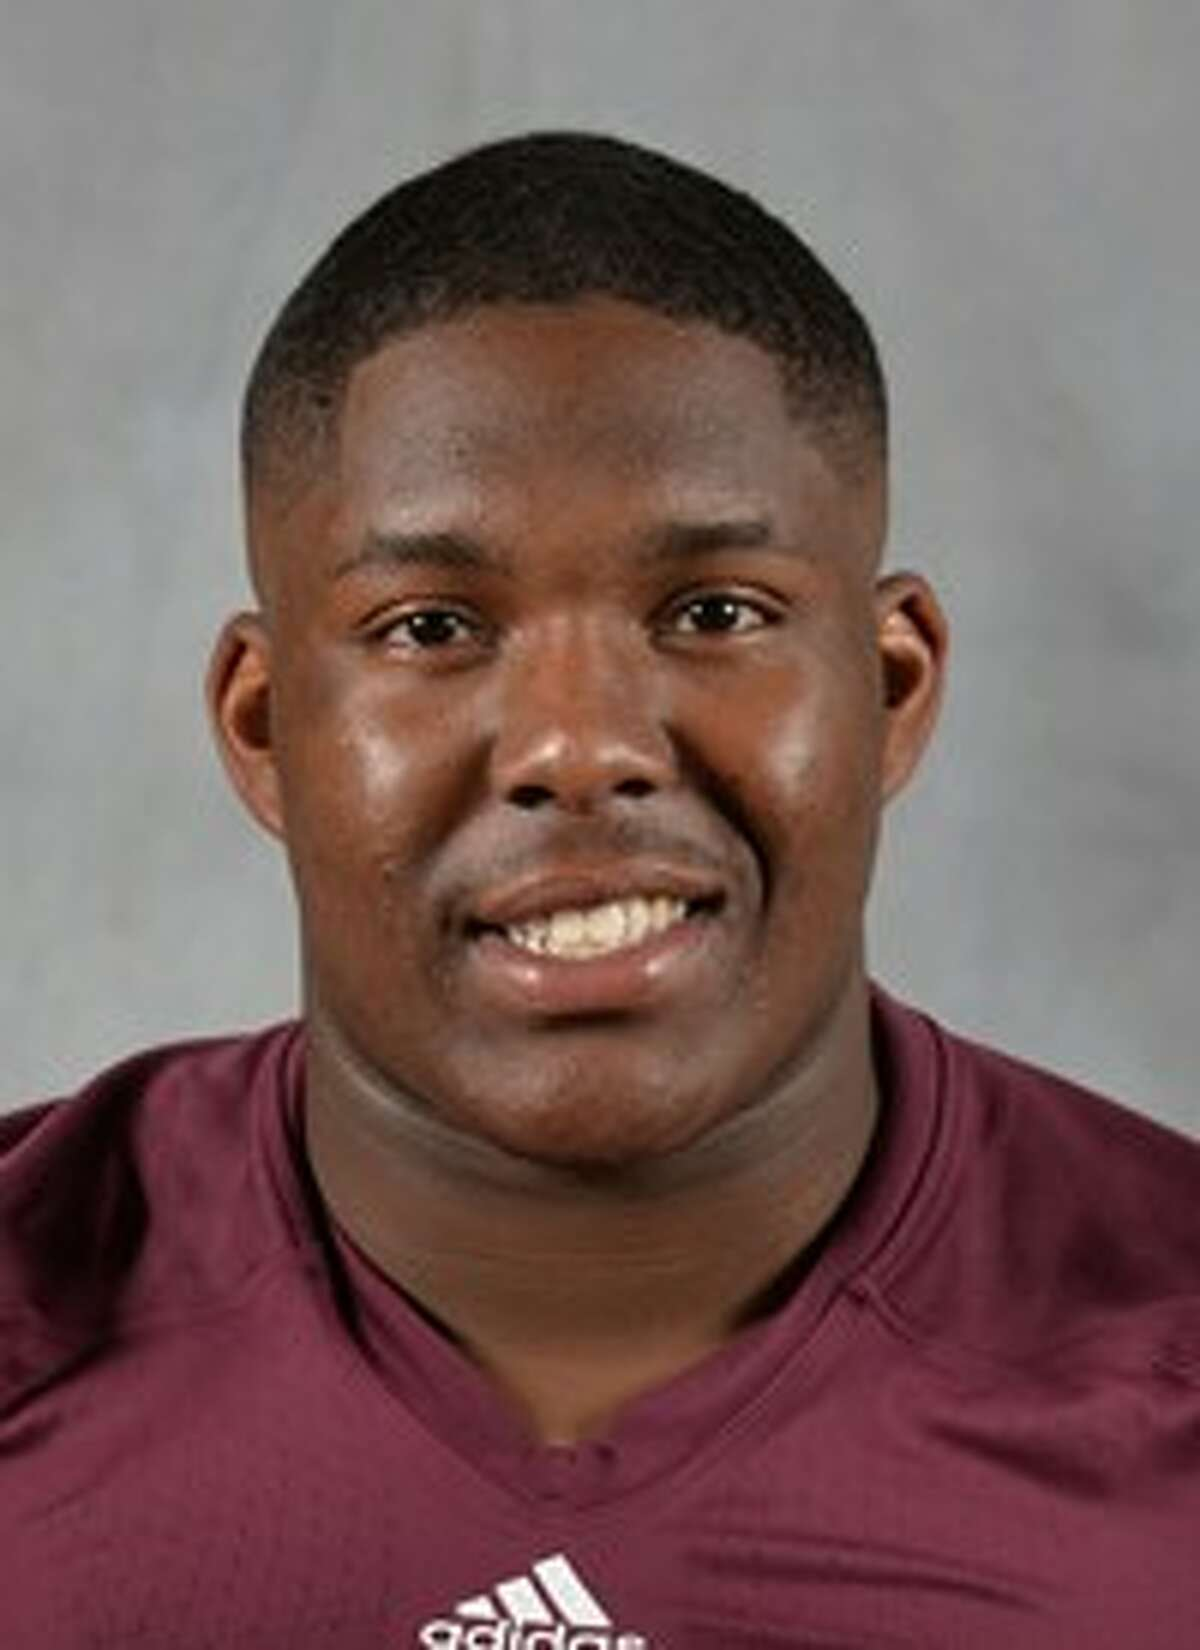 Will Trevillion, defensive tackle for Texas State University, died on Jan. 6, 2016. He was 20 years old.